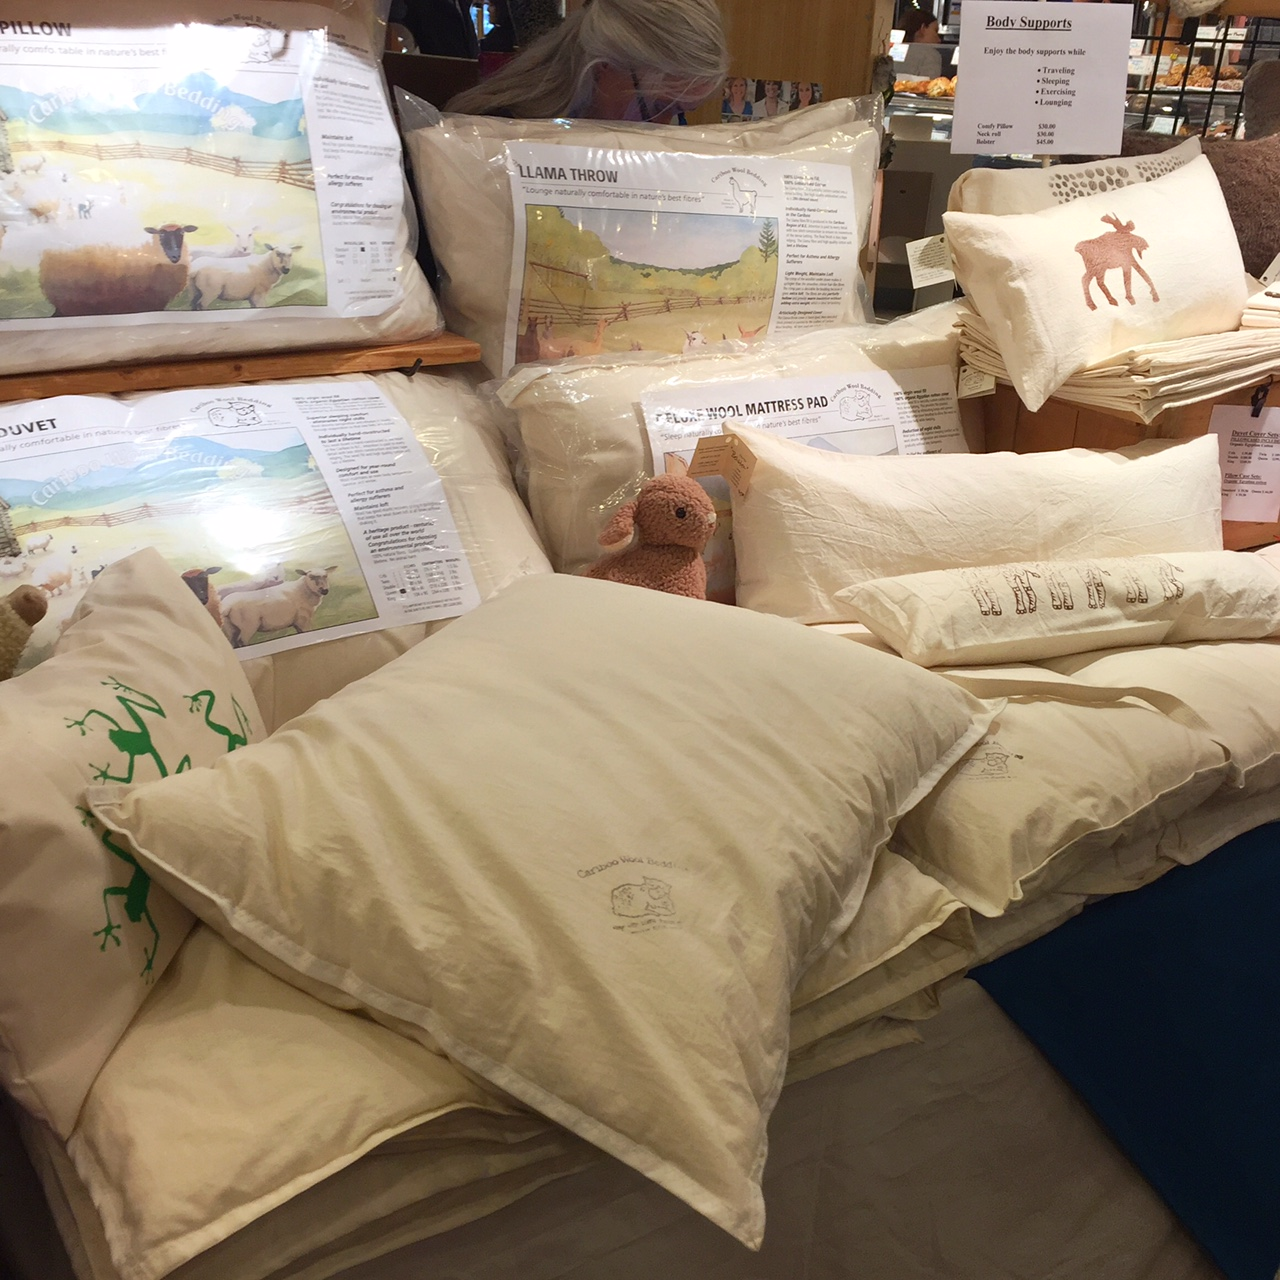 So we bought these pillows. I don't remember why except they seemed a good buy at the time